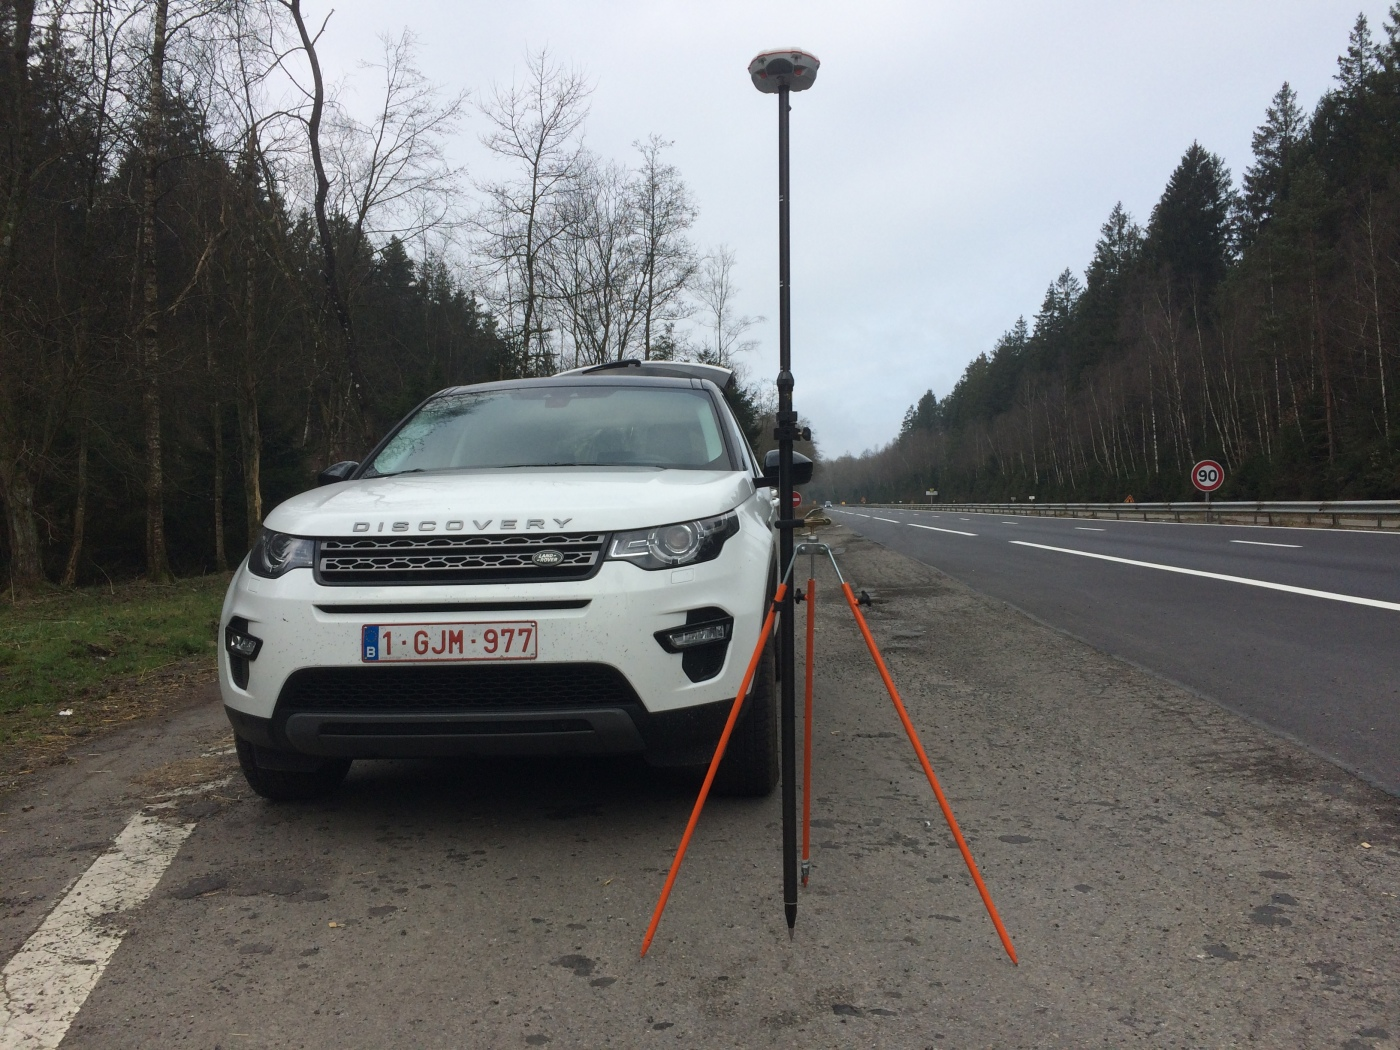 LAND ROVER AND GNSS ROVER